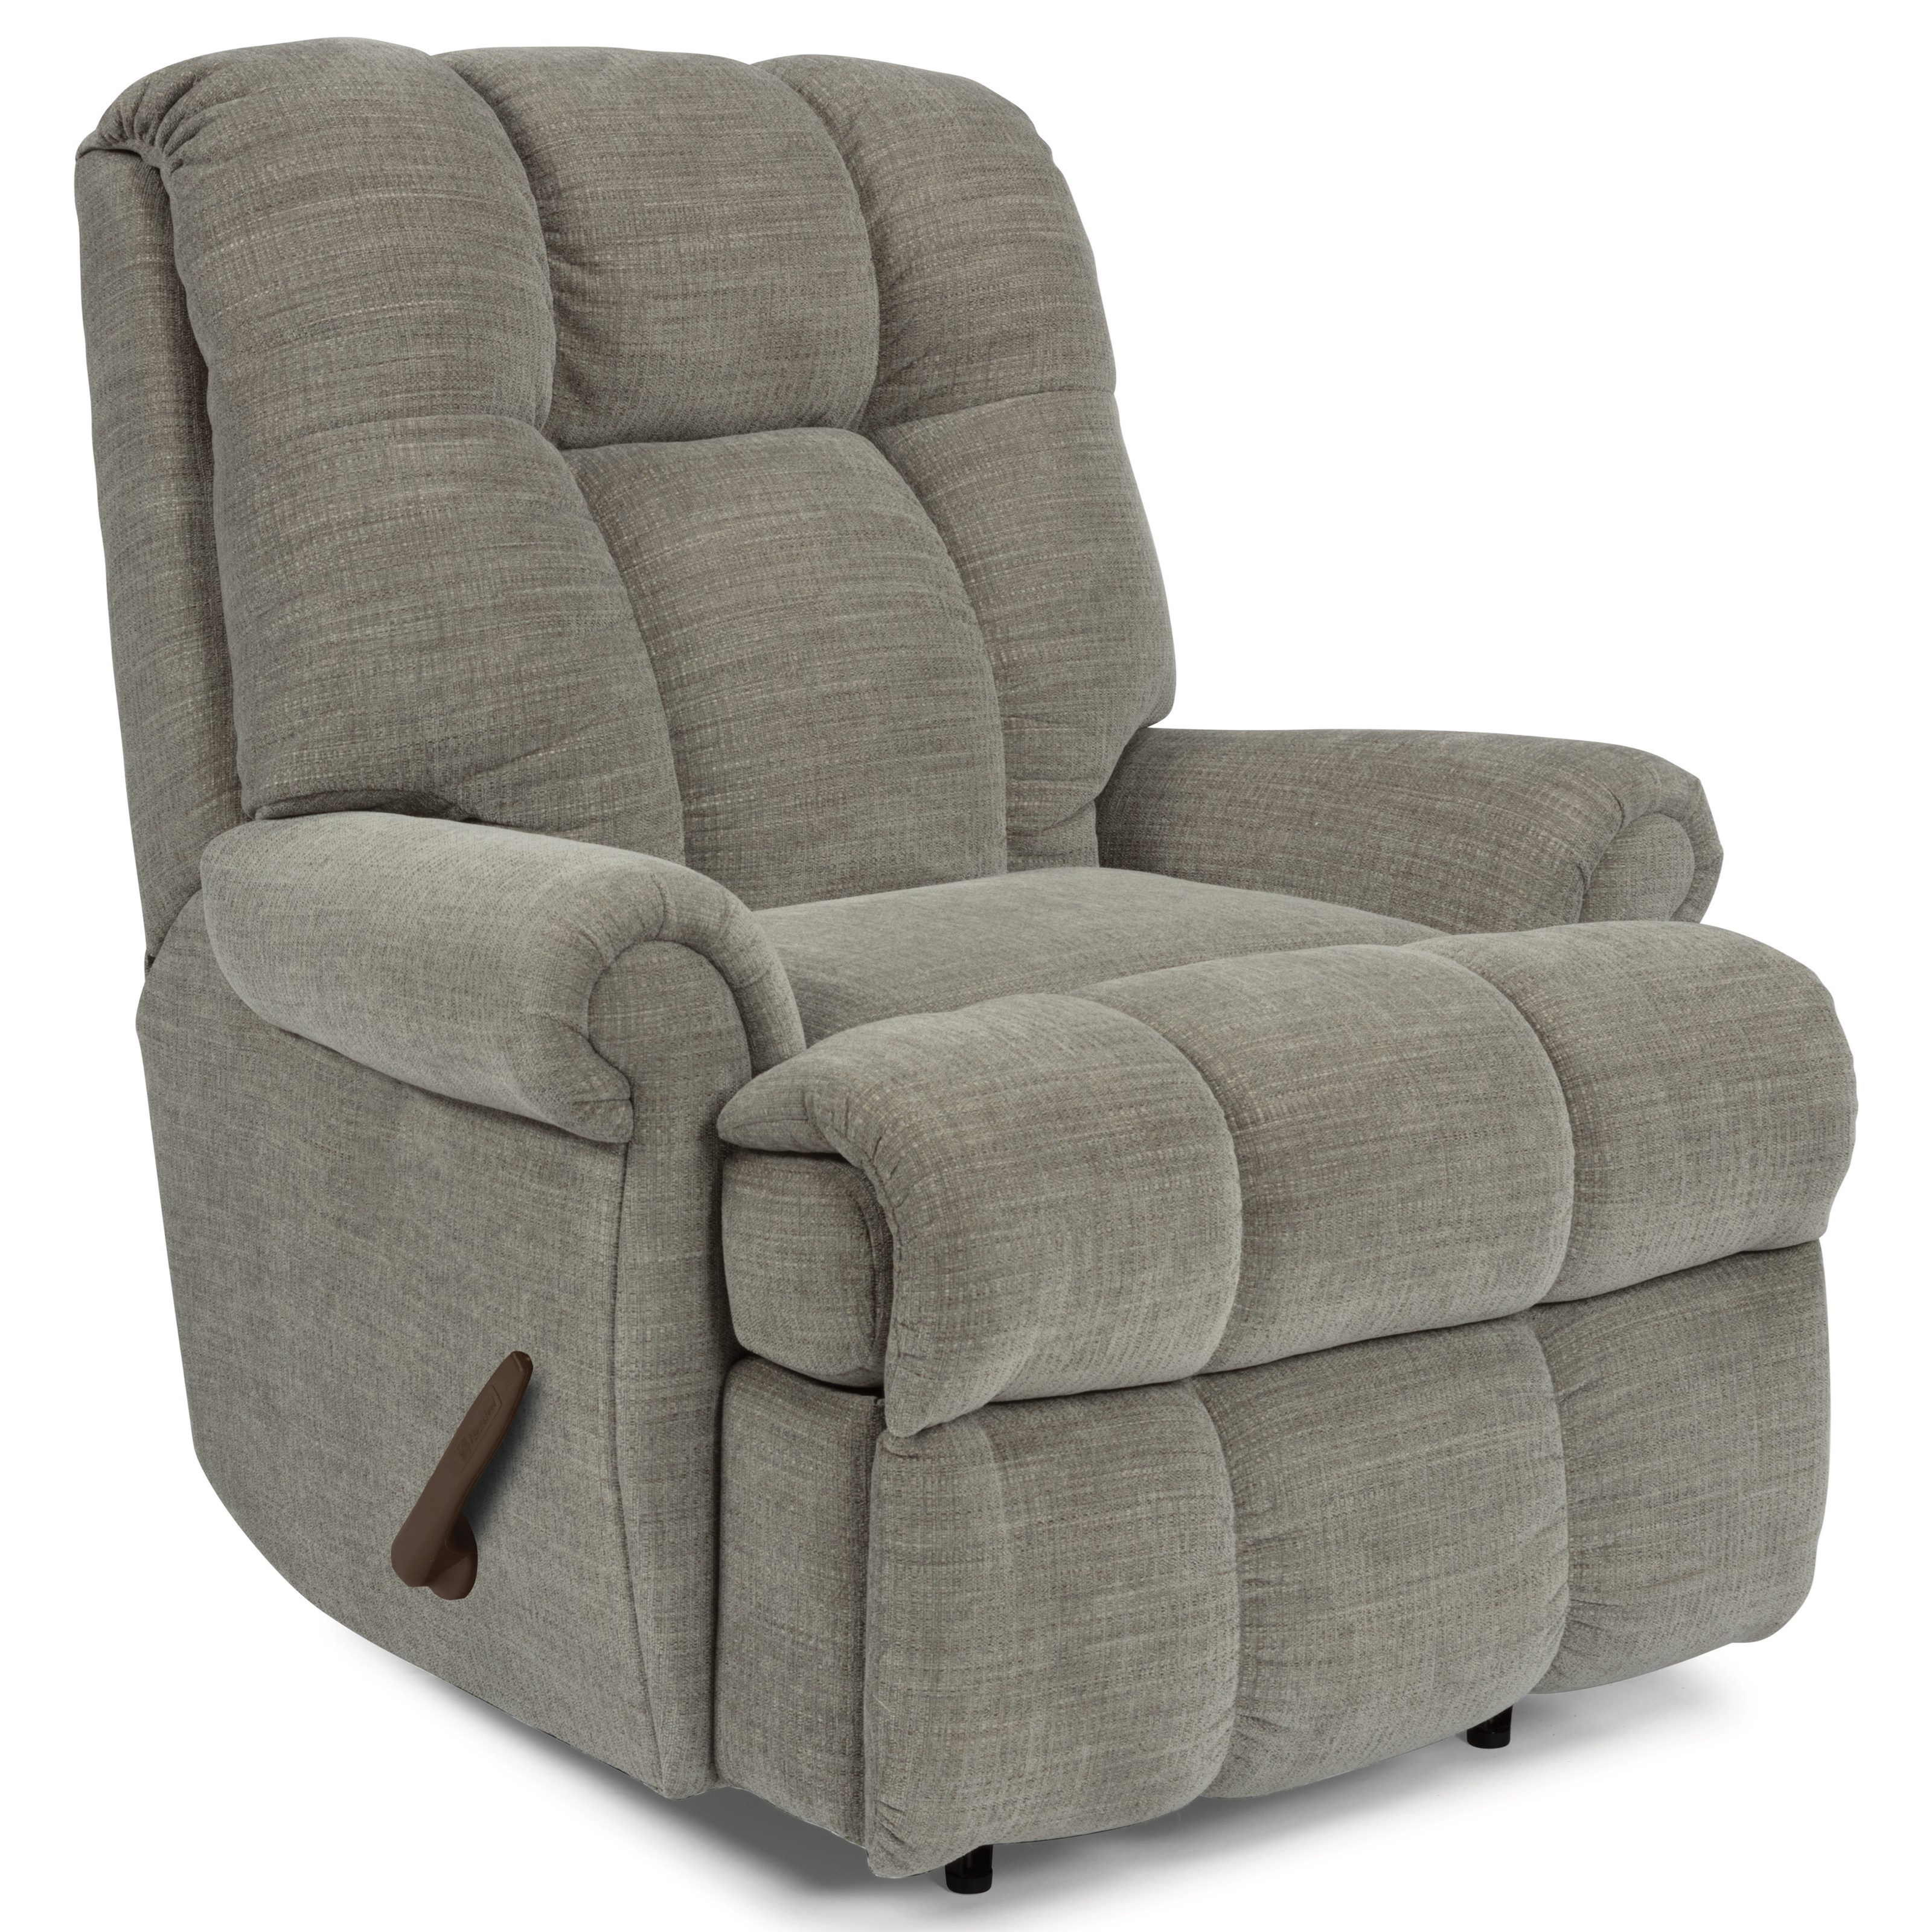 Accents Large Recliner by Flexsteel at Mueller Furniture